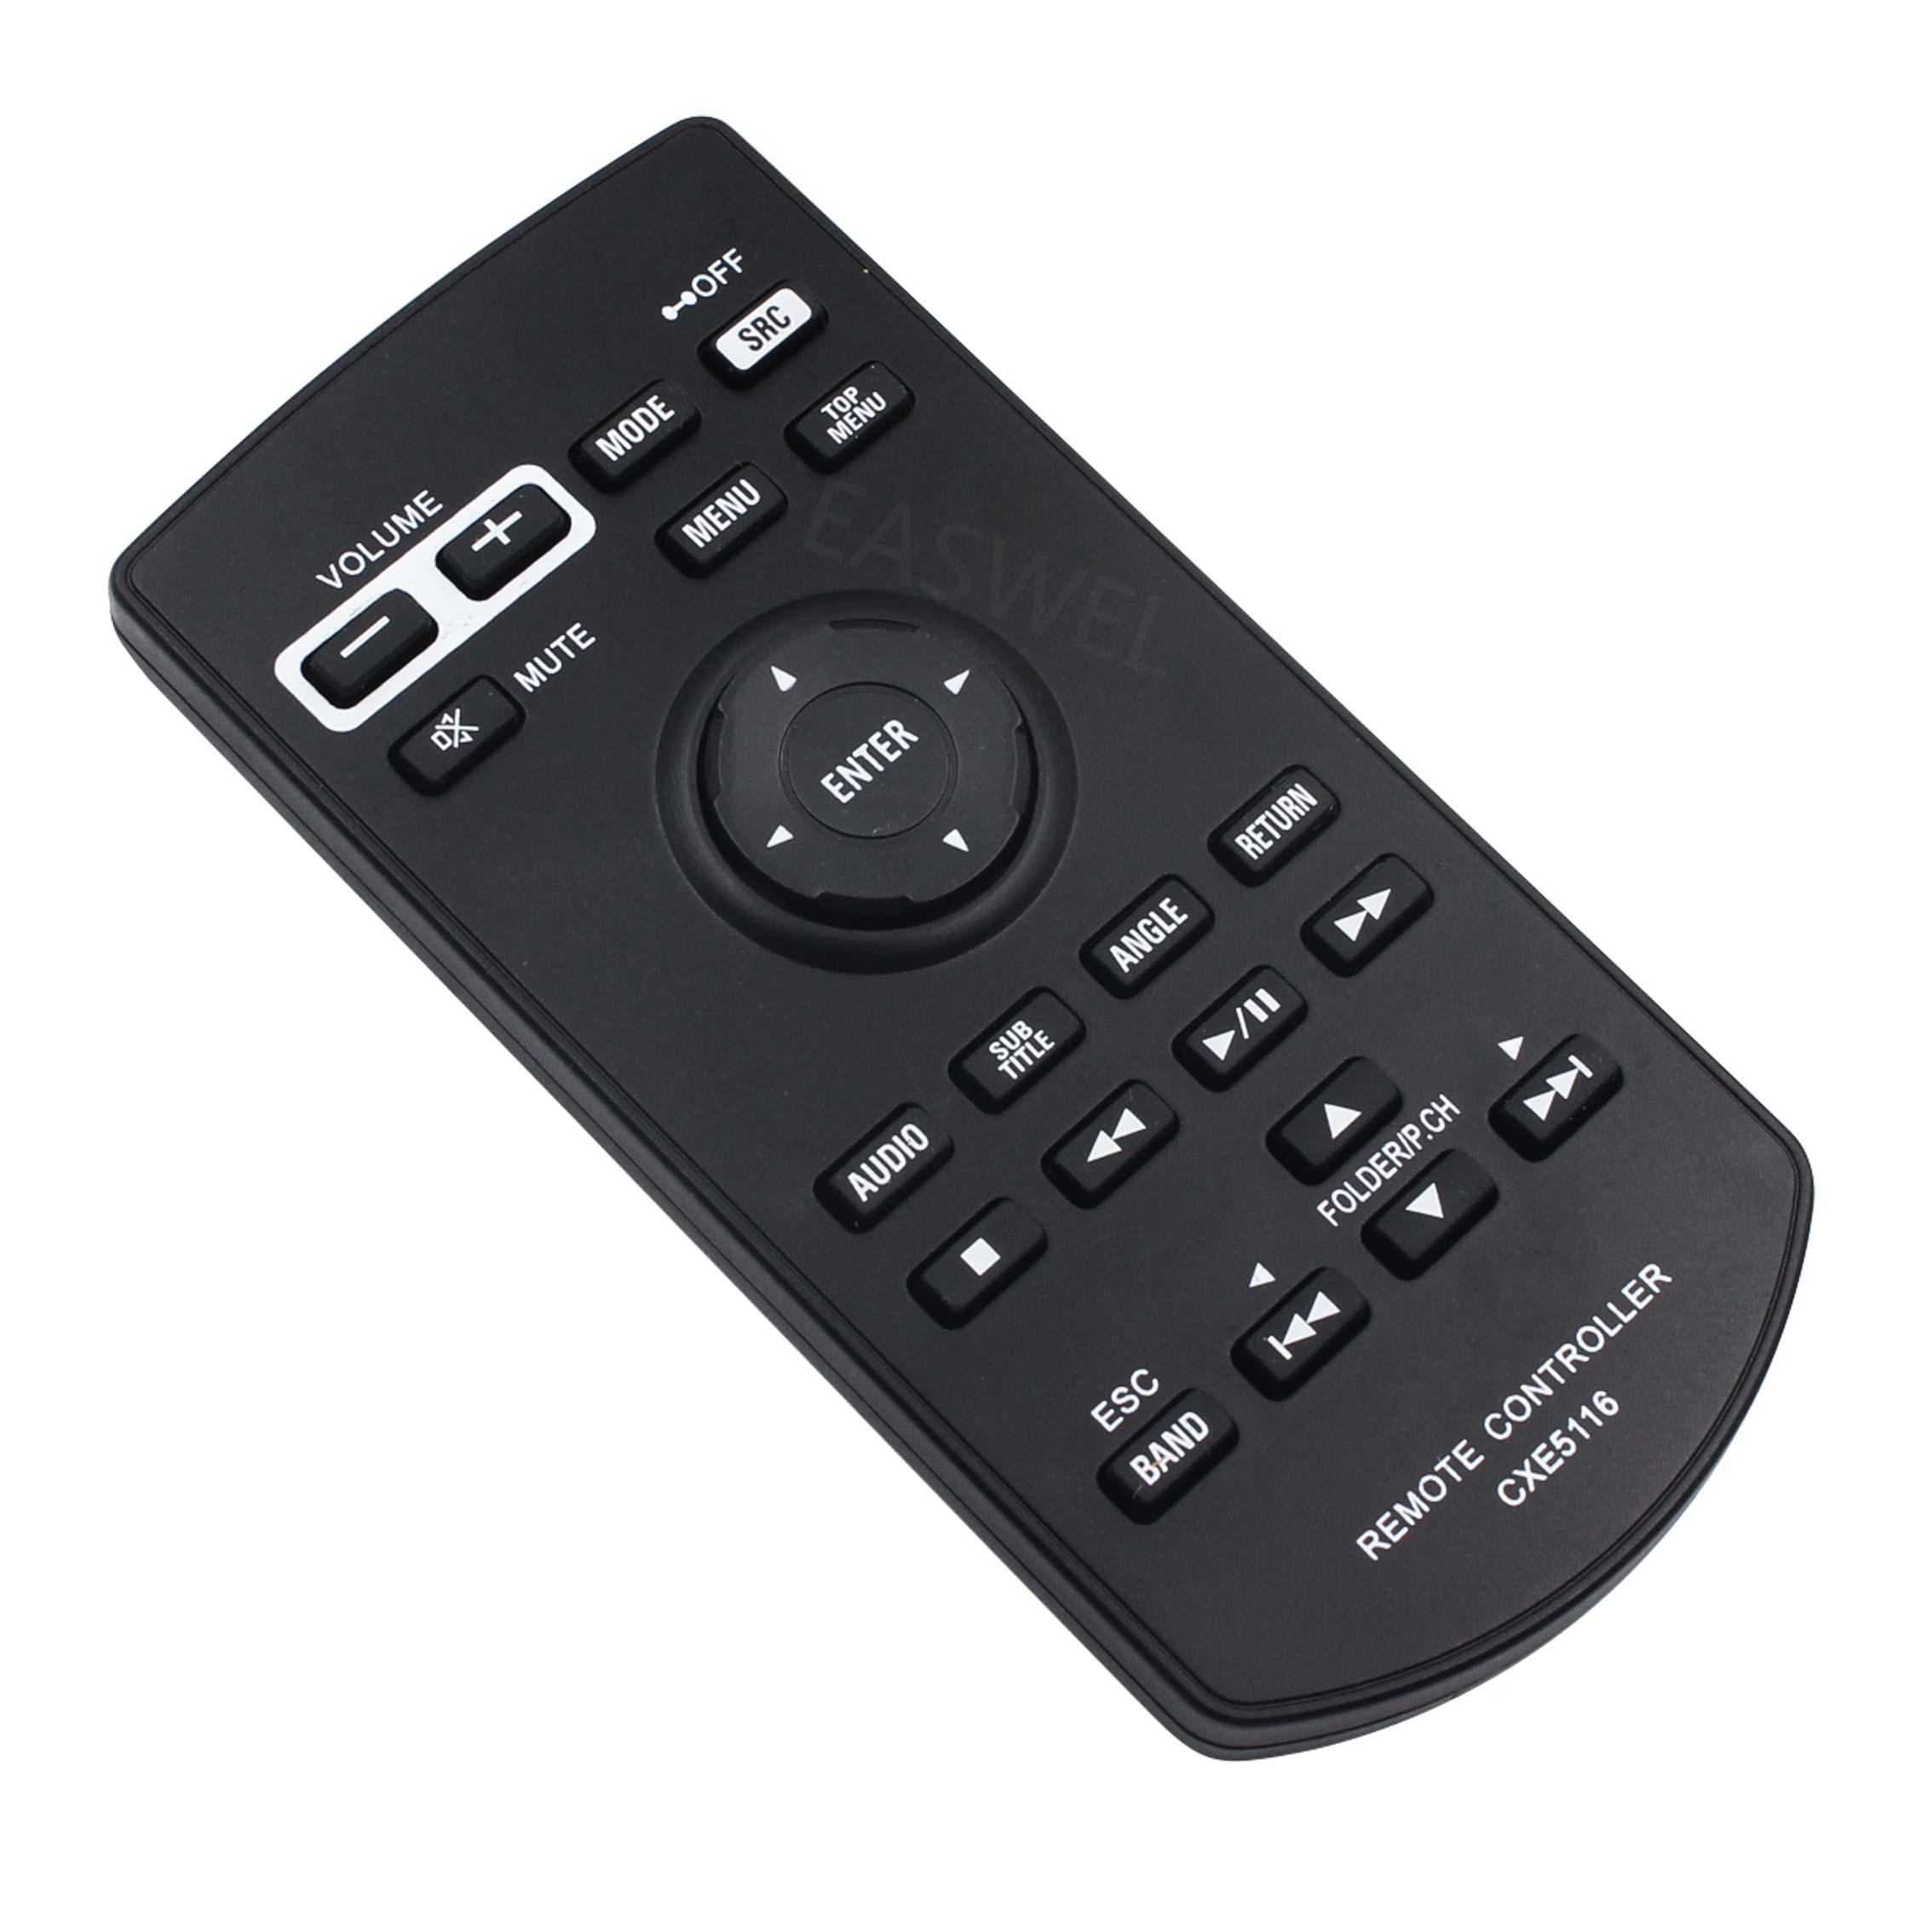 Genuine Pioneer Remote Control for Select Pioneer Stereo Radio Brand New